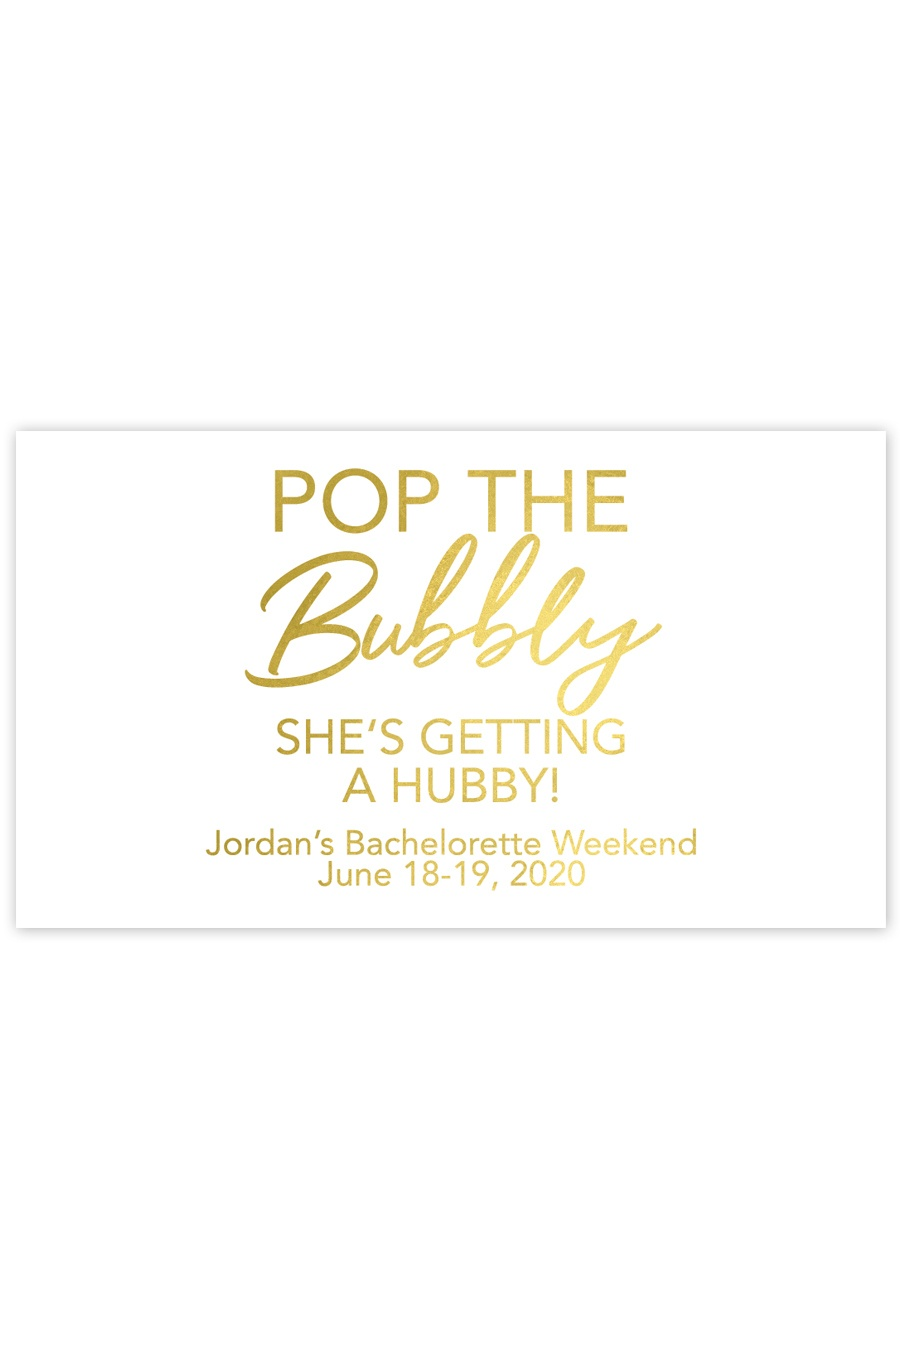 Pop The Bubbly She's Getting A Hubby Mini Champagne Labels - Chicfetti - Pop The Bubbly She's Getting A Hubby Free Printable